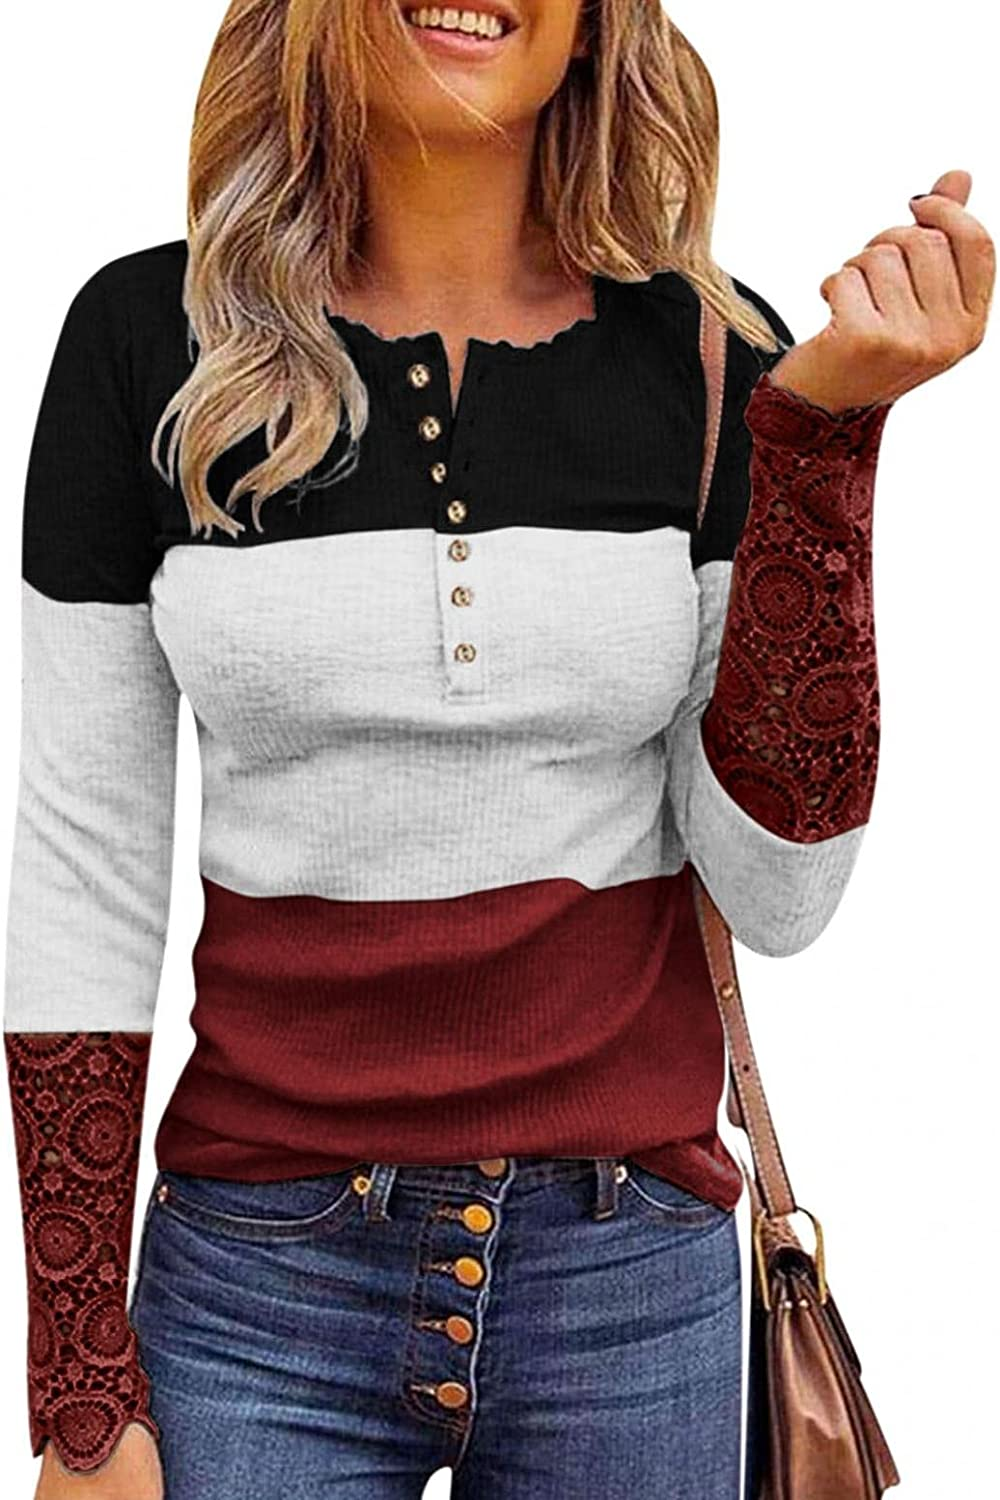 PHSHY Womens Ribbed Knits Henley Tops S Sale High quality new Long Lace Printed Floral